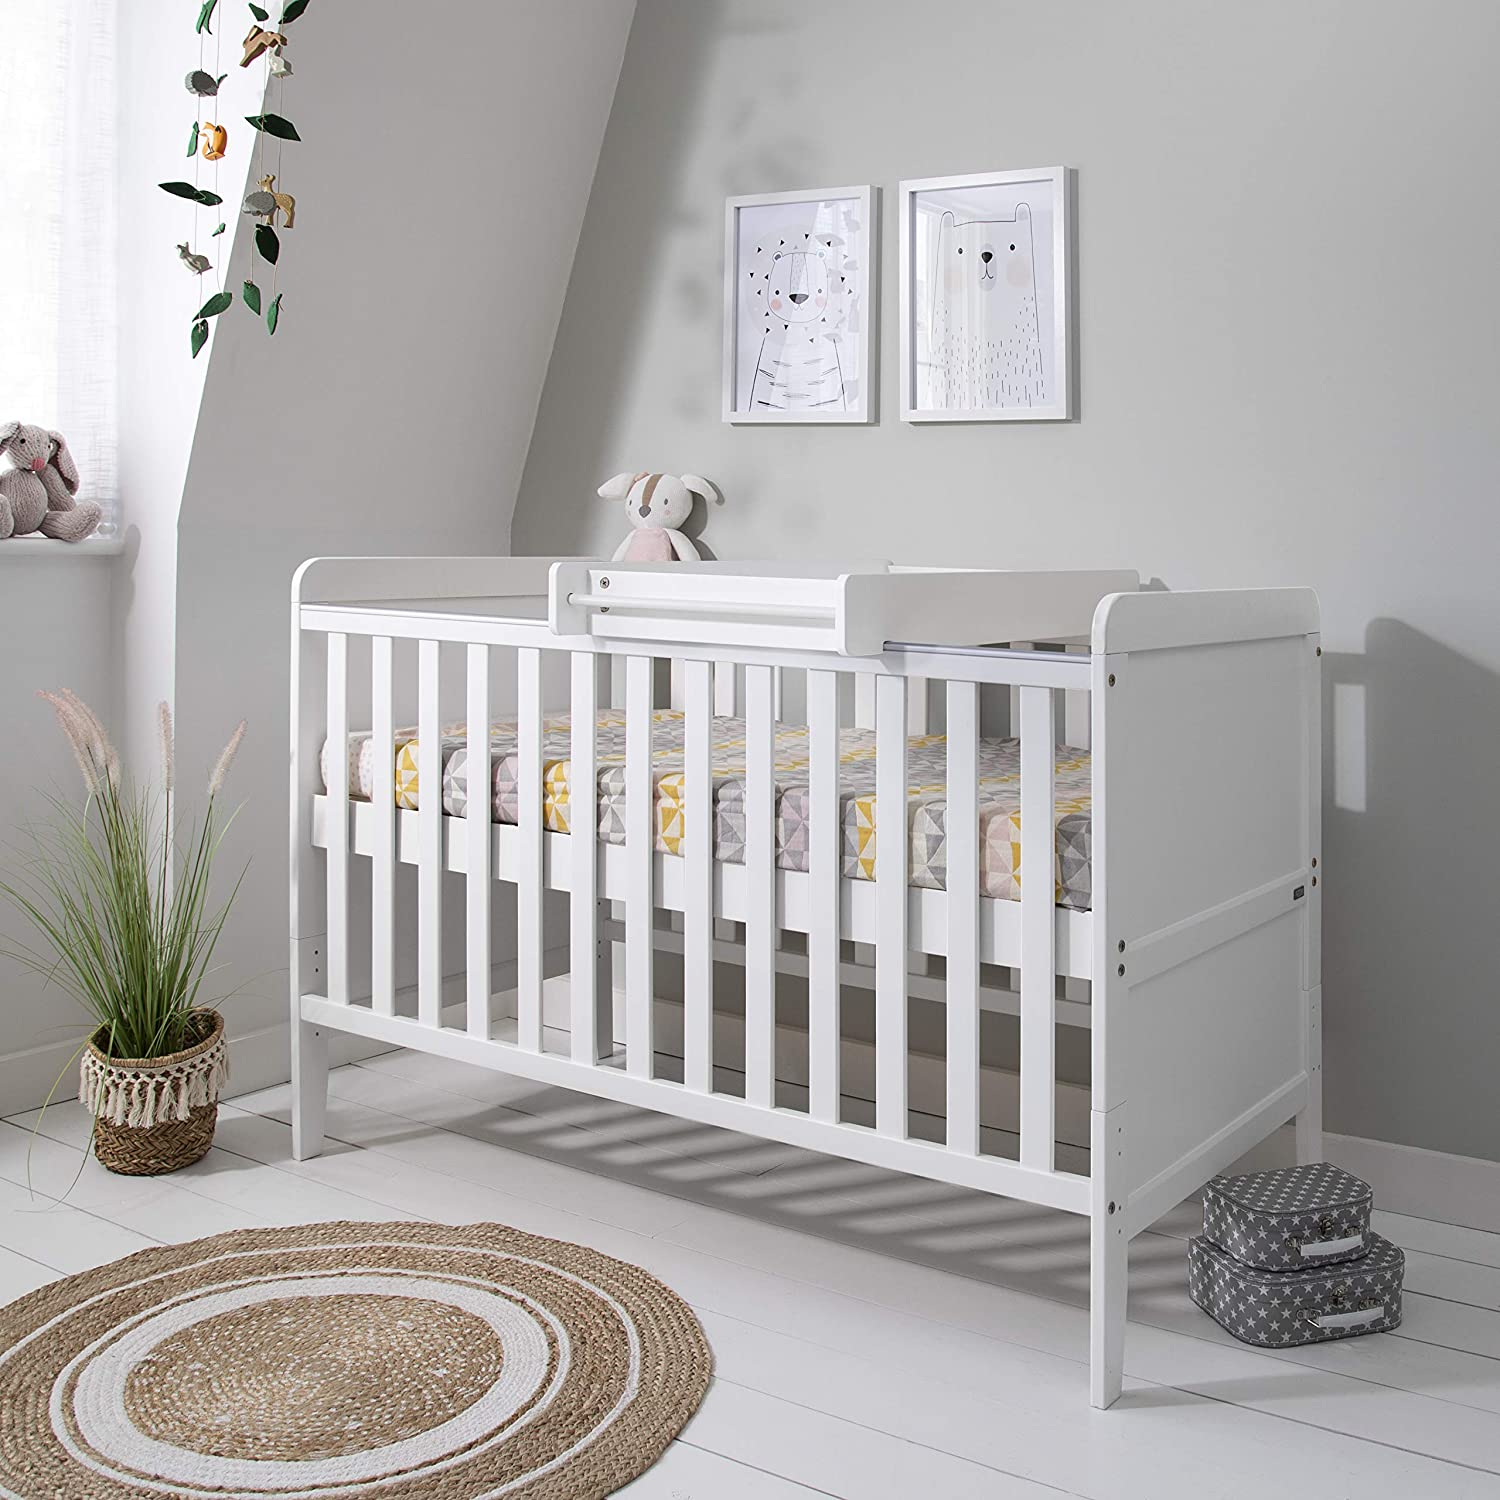 Rio Wooden Cot Bed & Cot Top Changer (Tutti Bambini) - 3 in 1 Convertible Baby Cot Bed, Toddler Bed and Matching Cot Top Baby Changer (White)